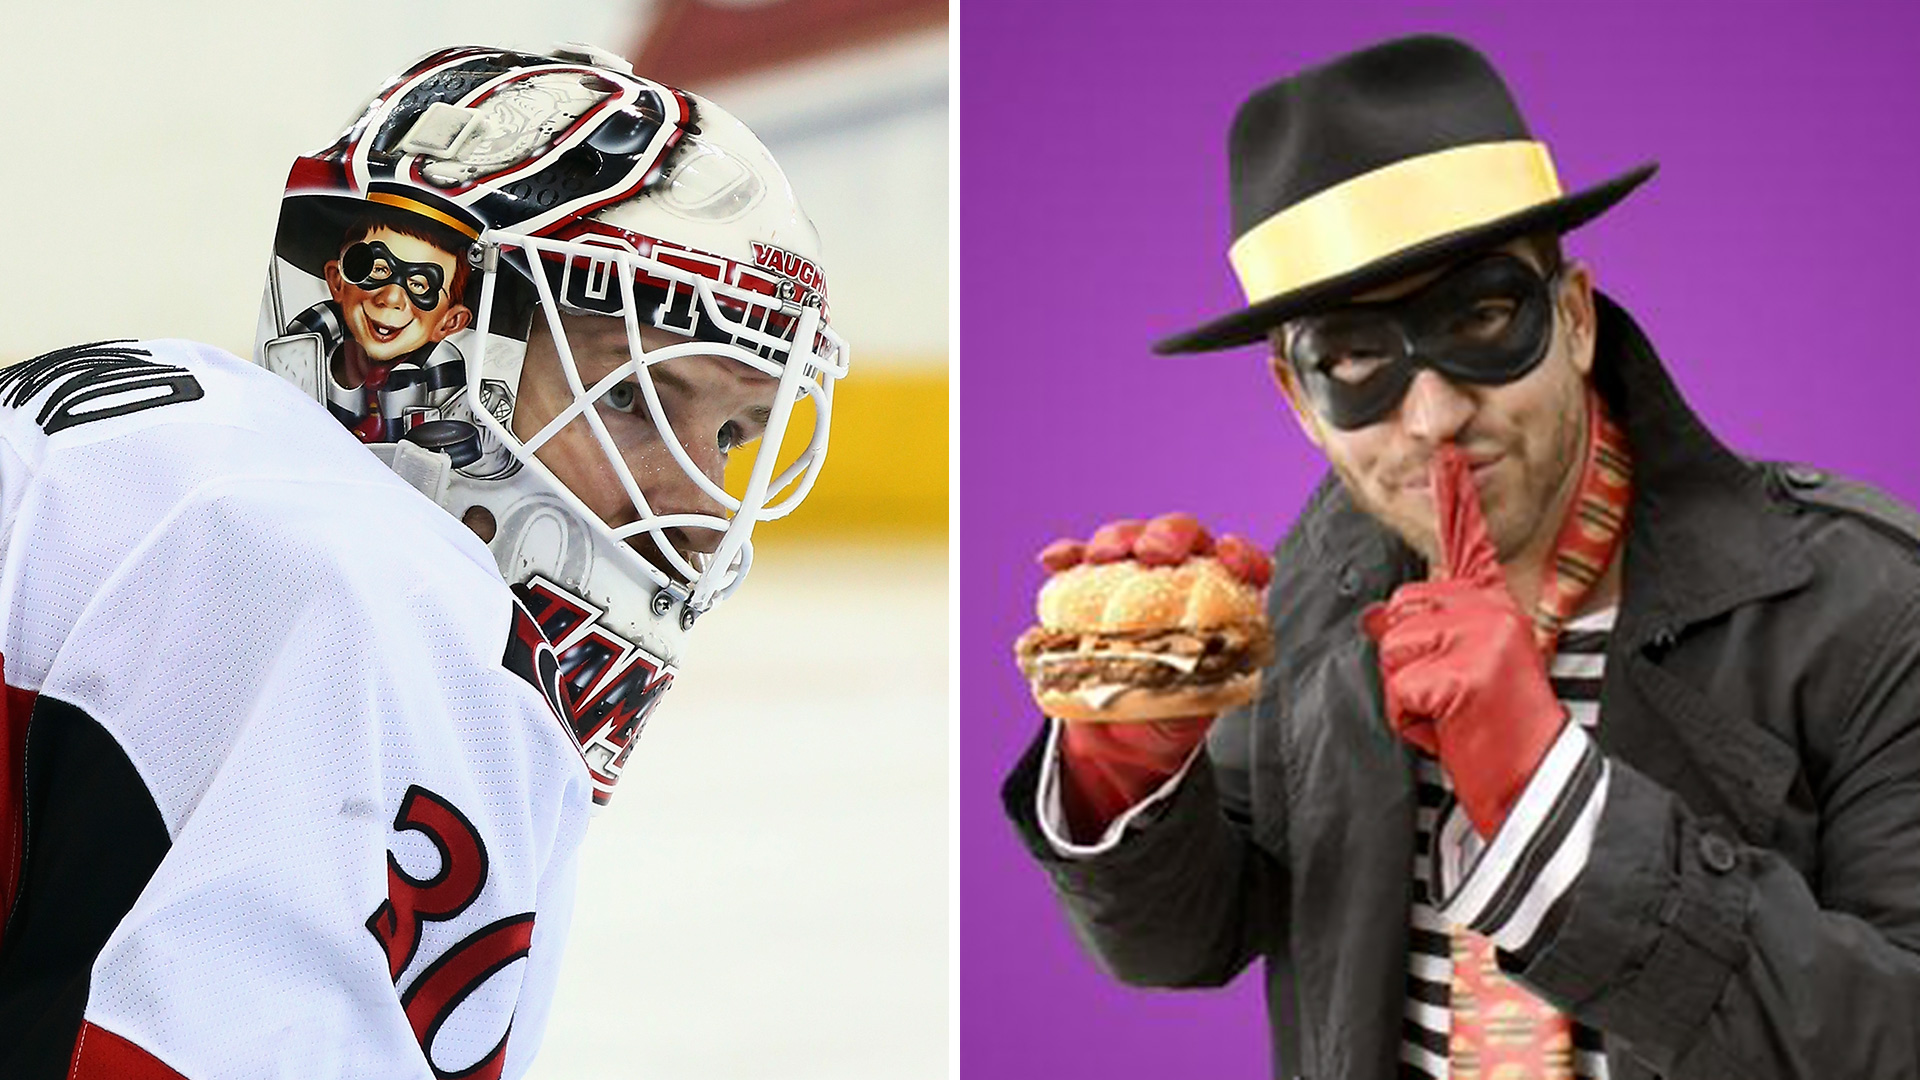 McDonald's: new Hamburglar has 'no connection' to Andrew Hammond